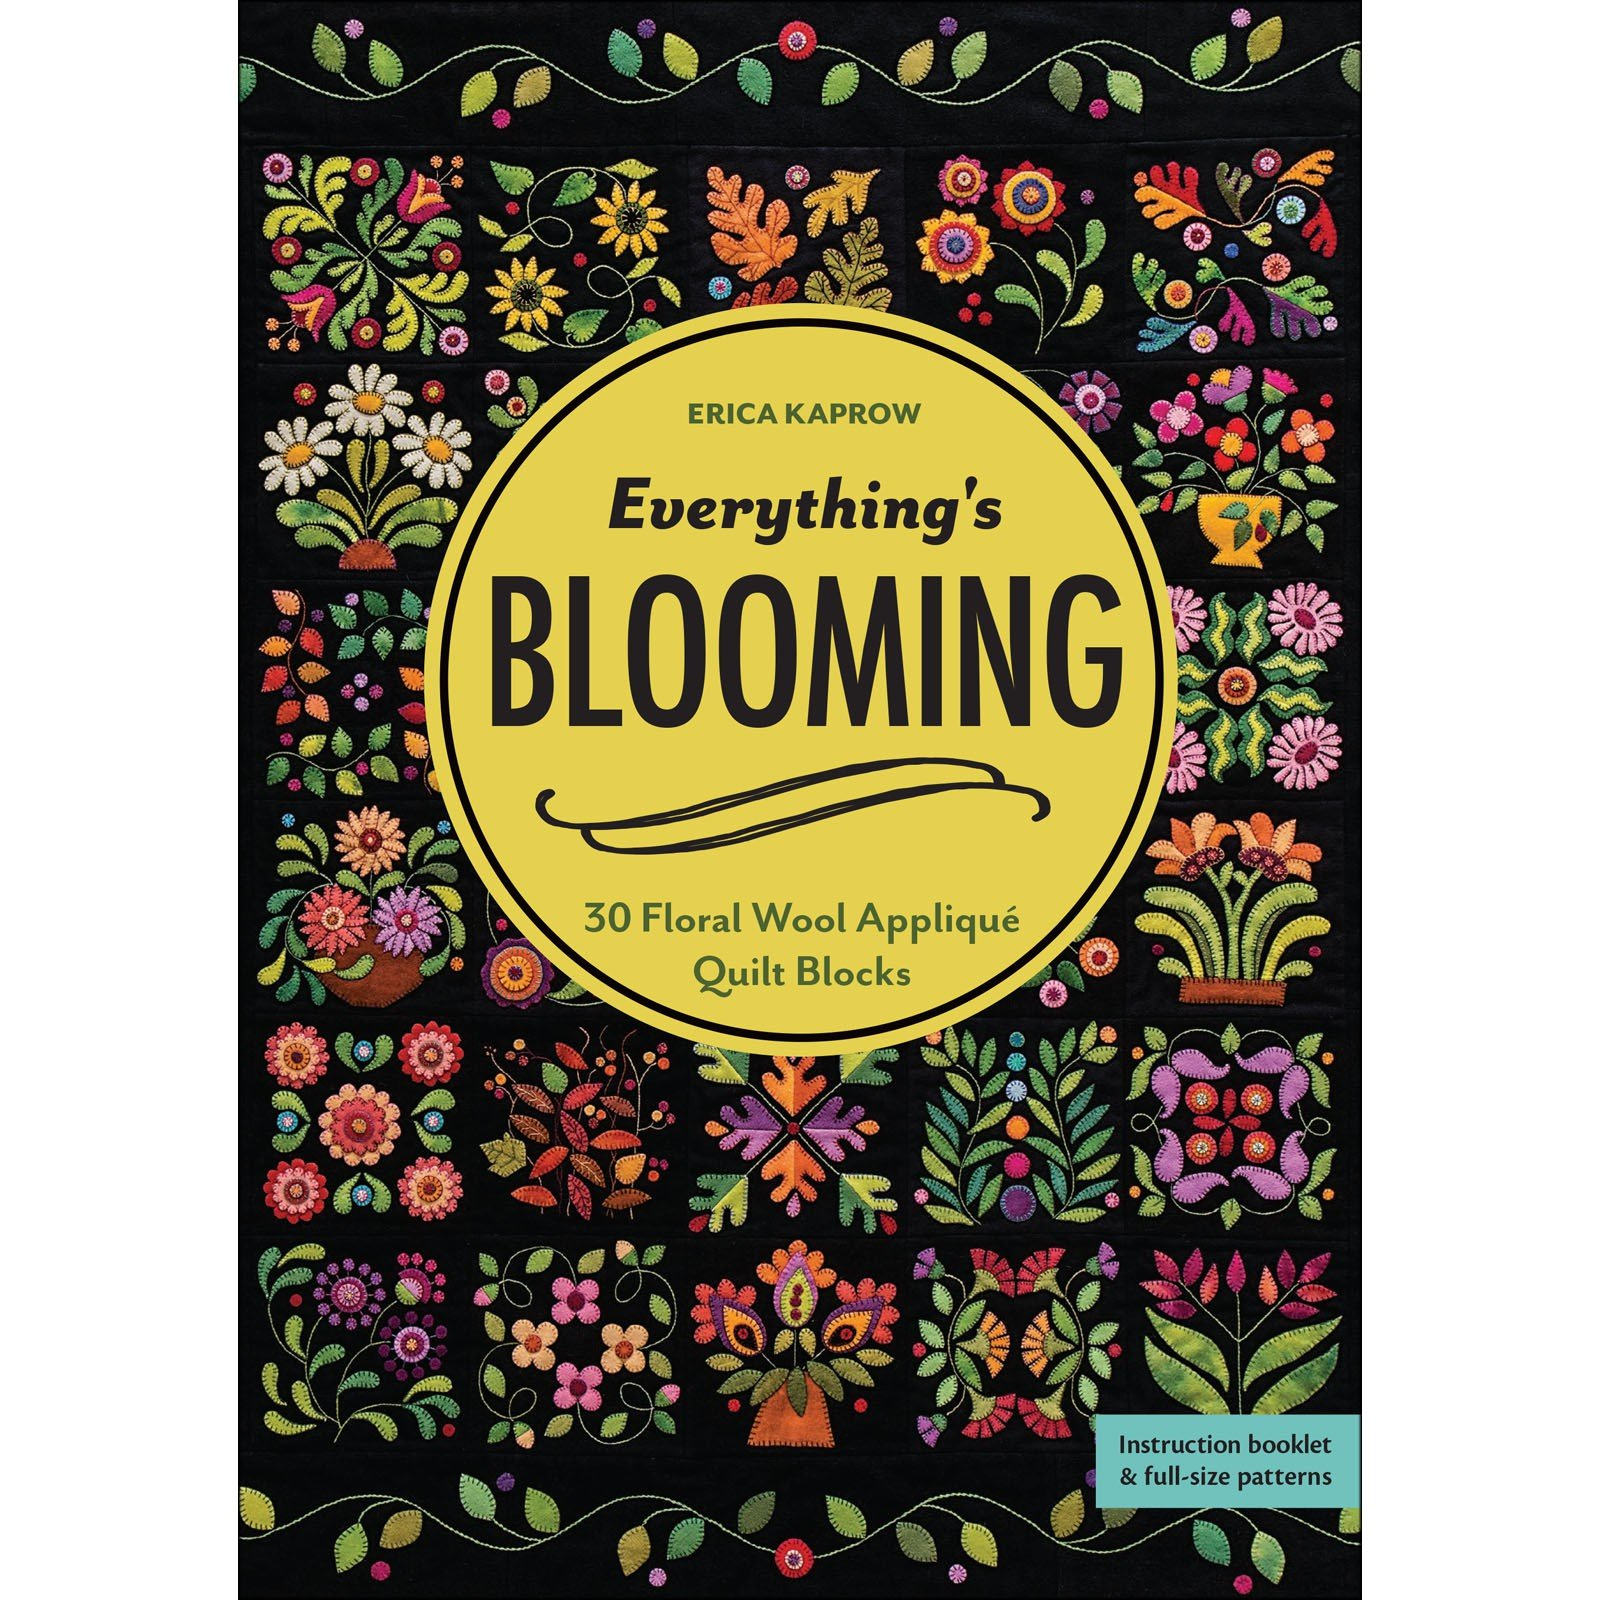 PatternBook. Everythings Blooming by Erica Kaprow